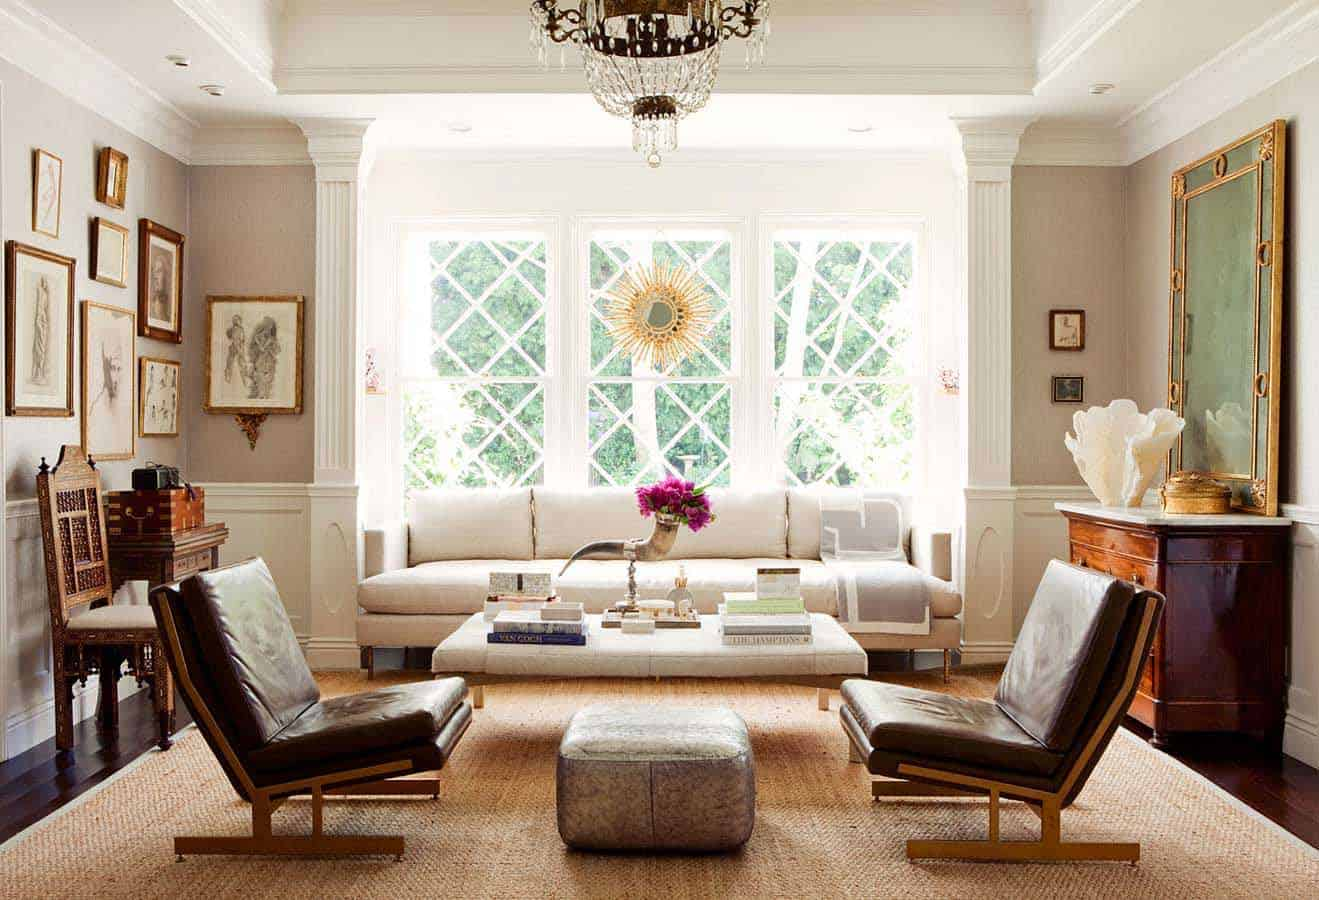 Arranging living room furniture kristina wolf design Ideas to arrange living room furniture